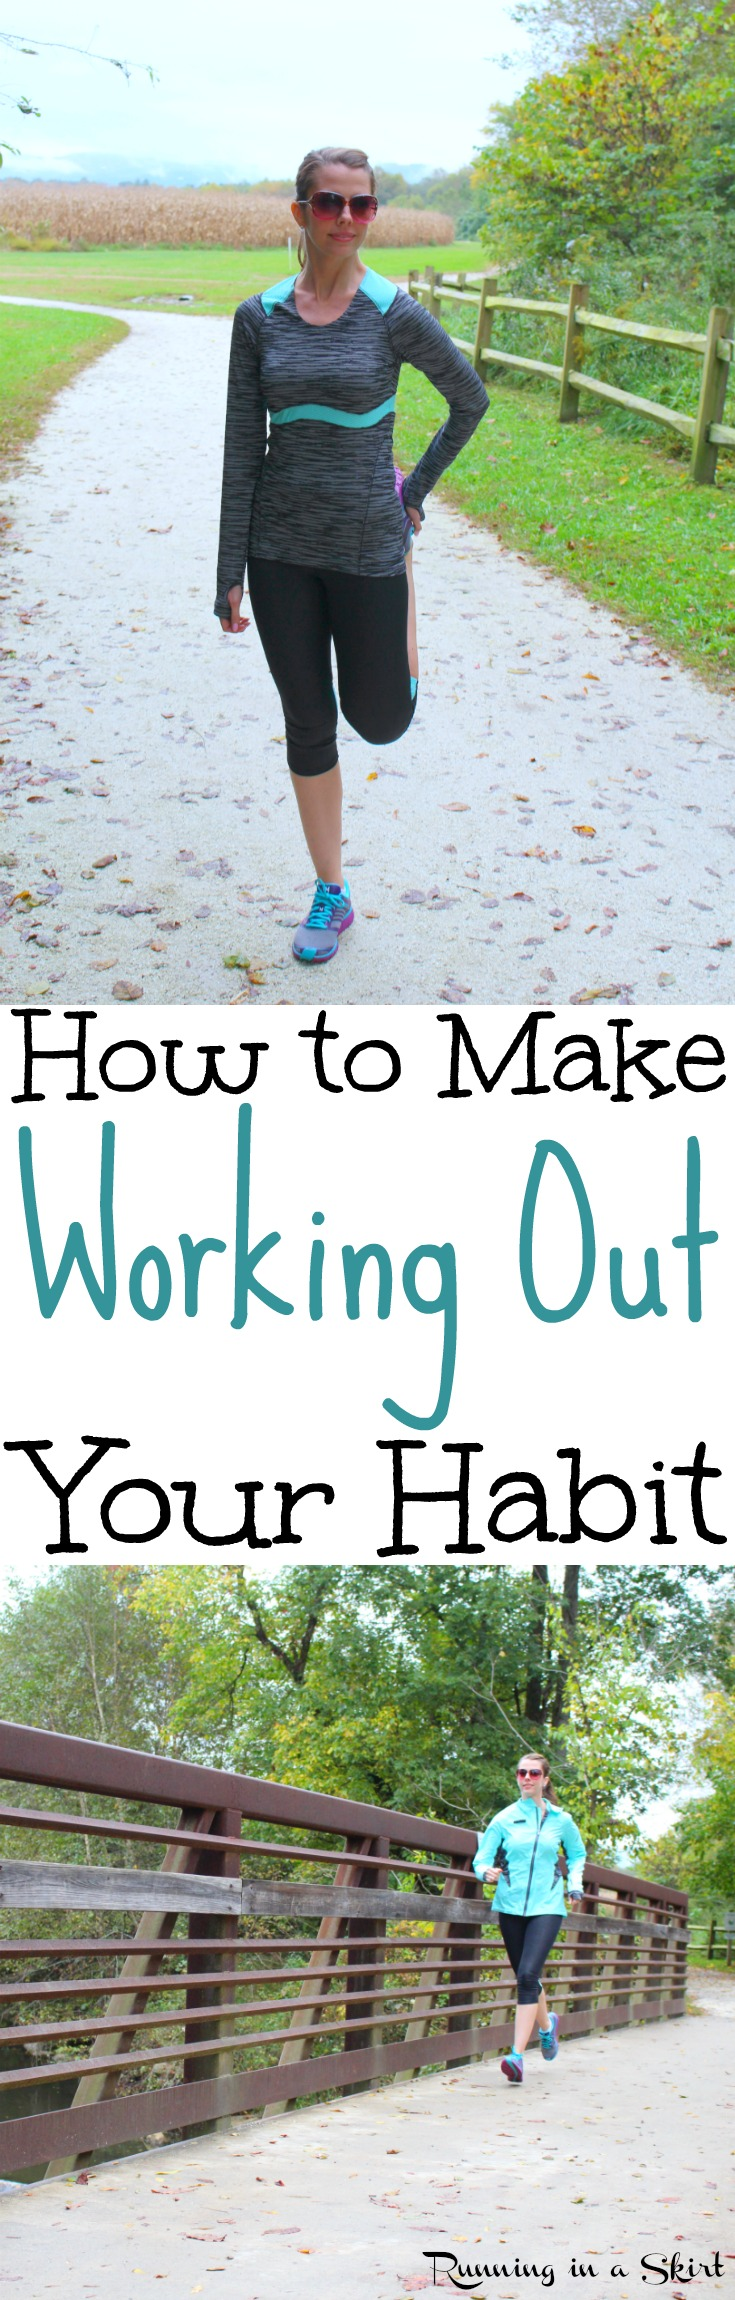 How to Start Working Out.  Whether you are at the gym, at home, running or starting again these simple tips and motivation will help you establish your fitness routines. Inspiration to make sure your goal sticks. Great for after baby, losing weight or just general fitness. / Running in a Skirt via @juliewunder